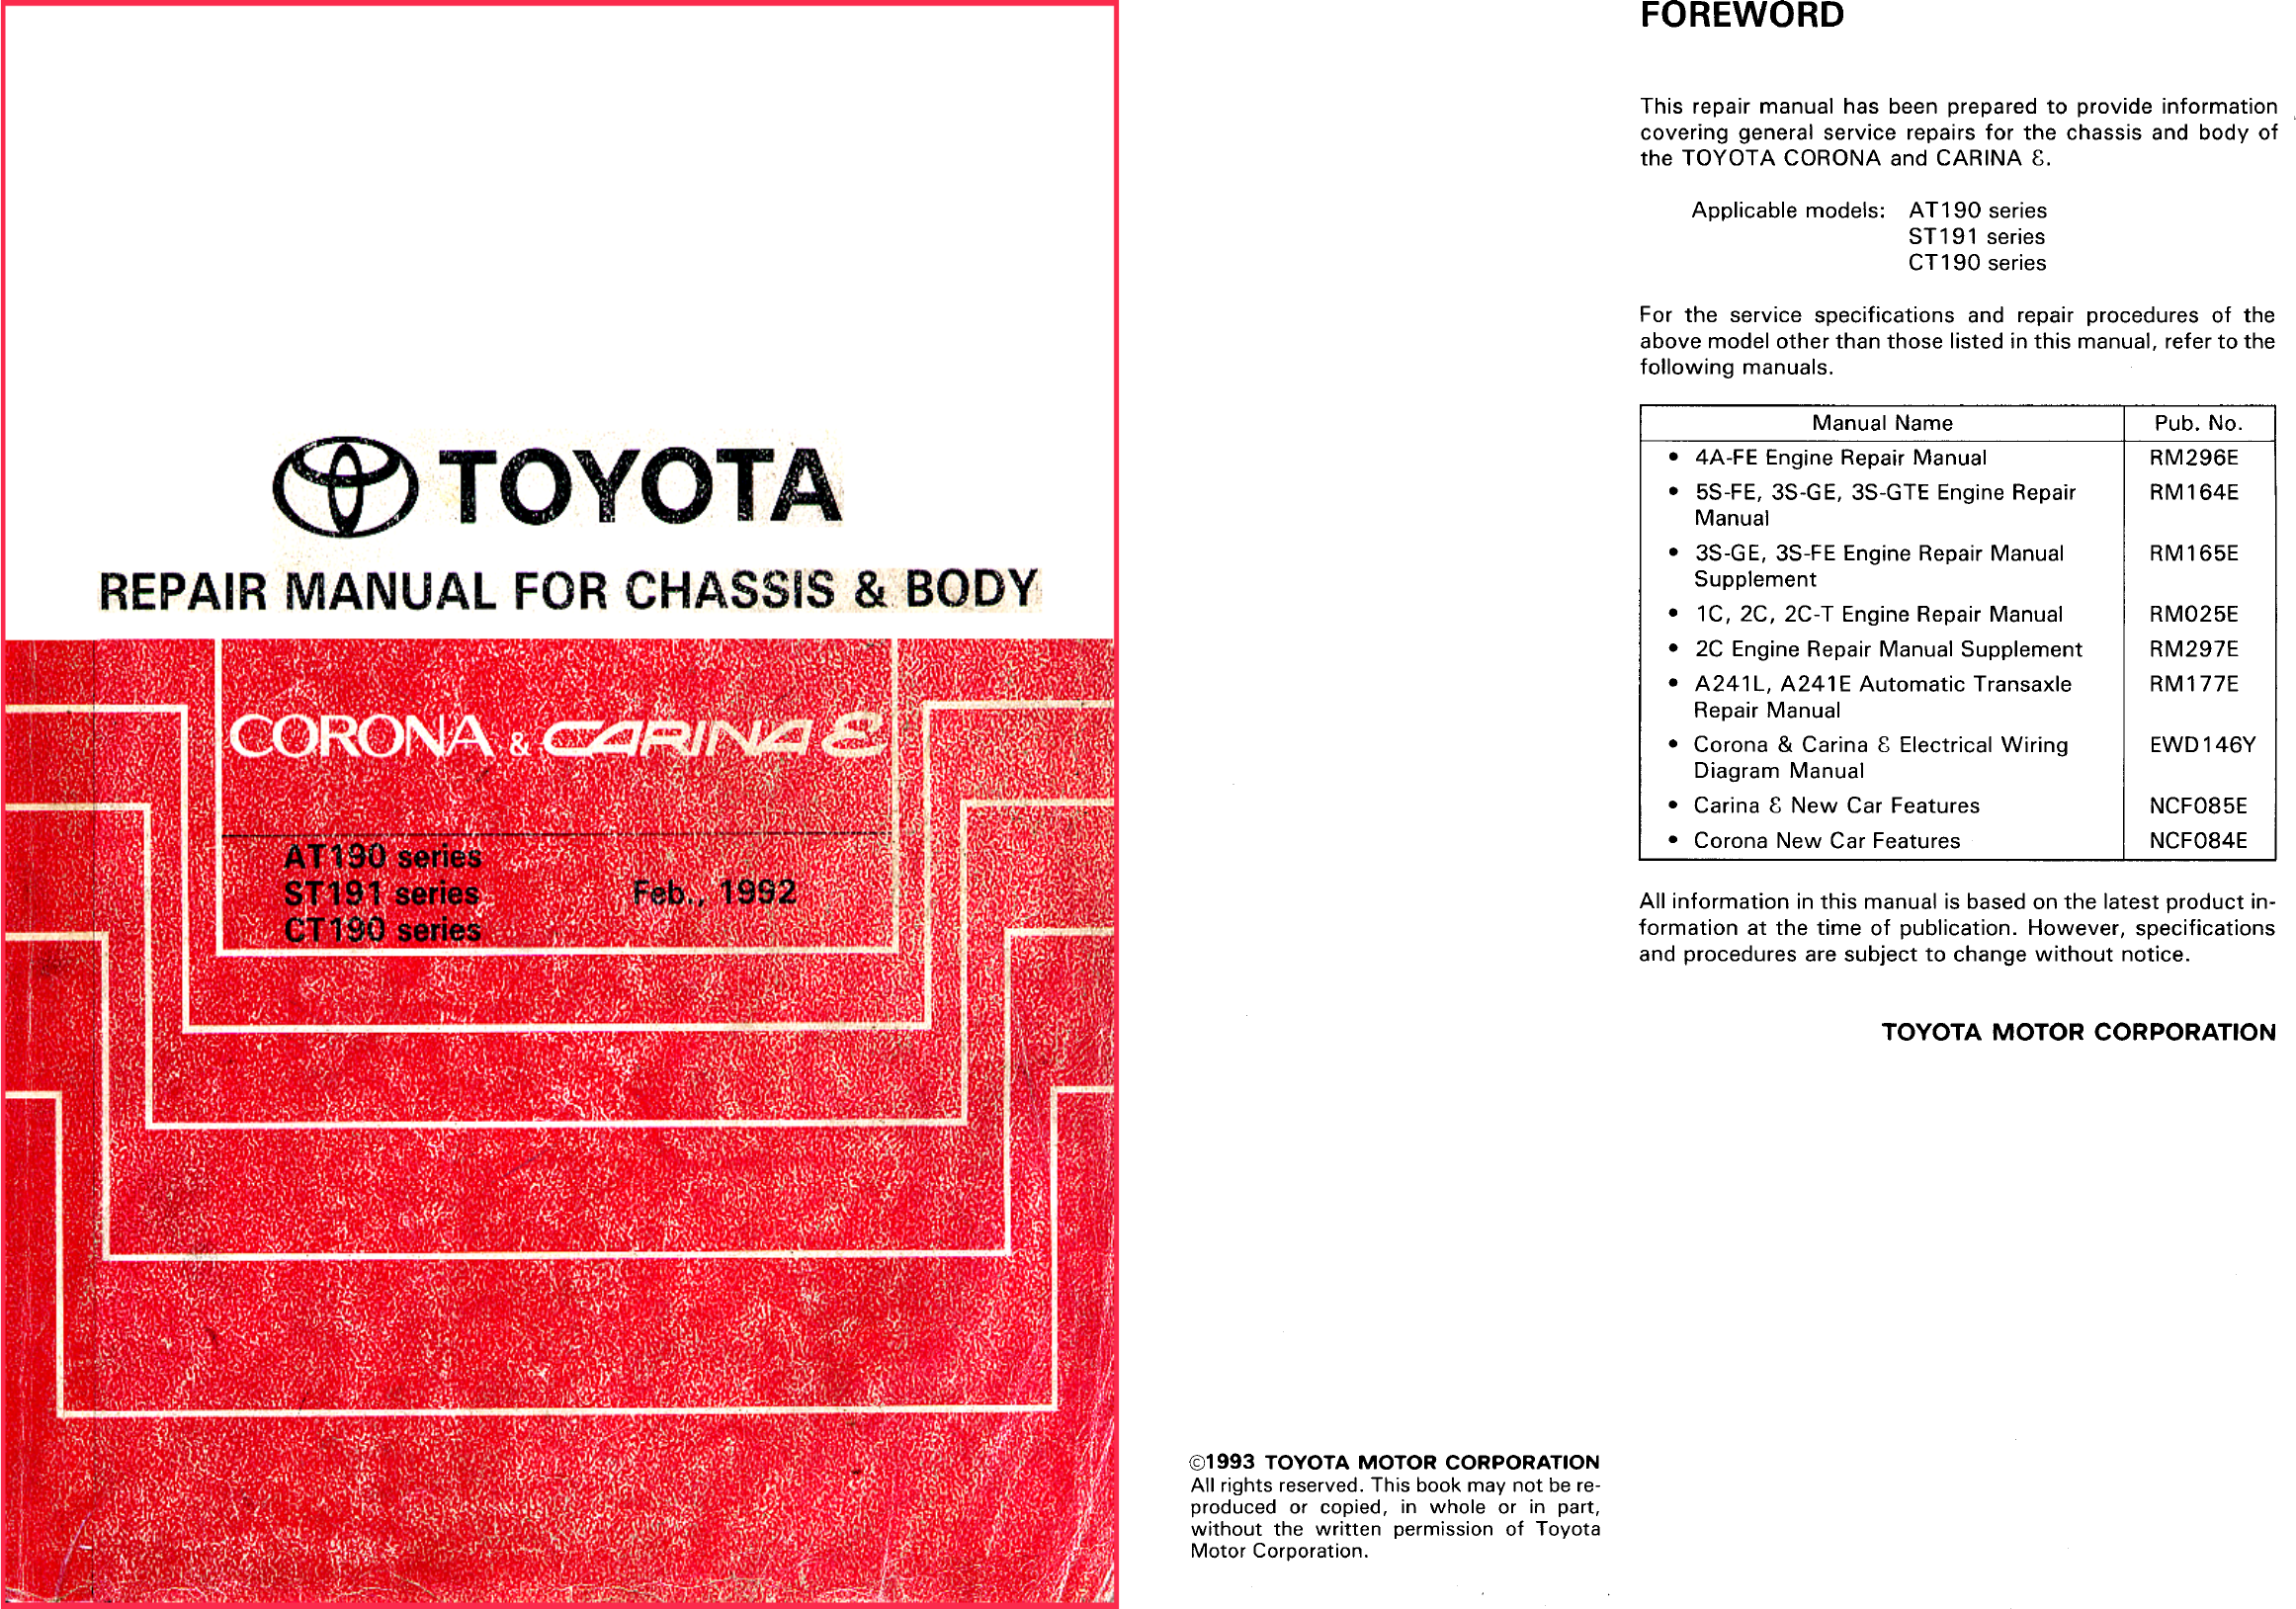 See our other Toyota Carina Manuals: